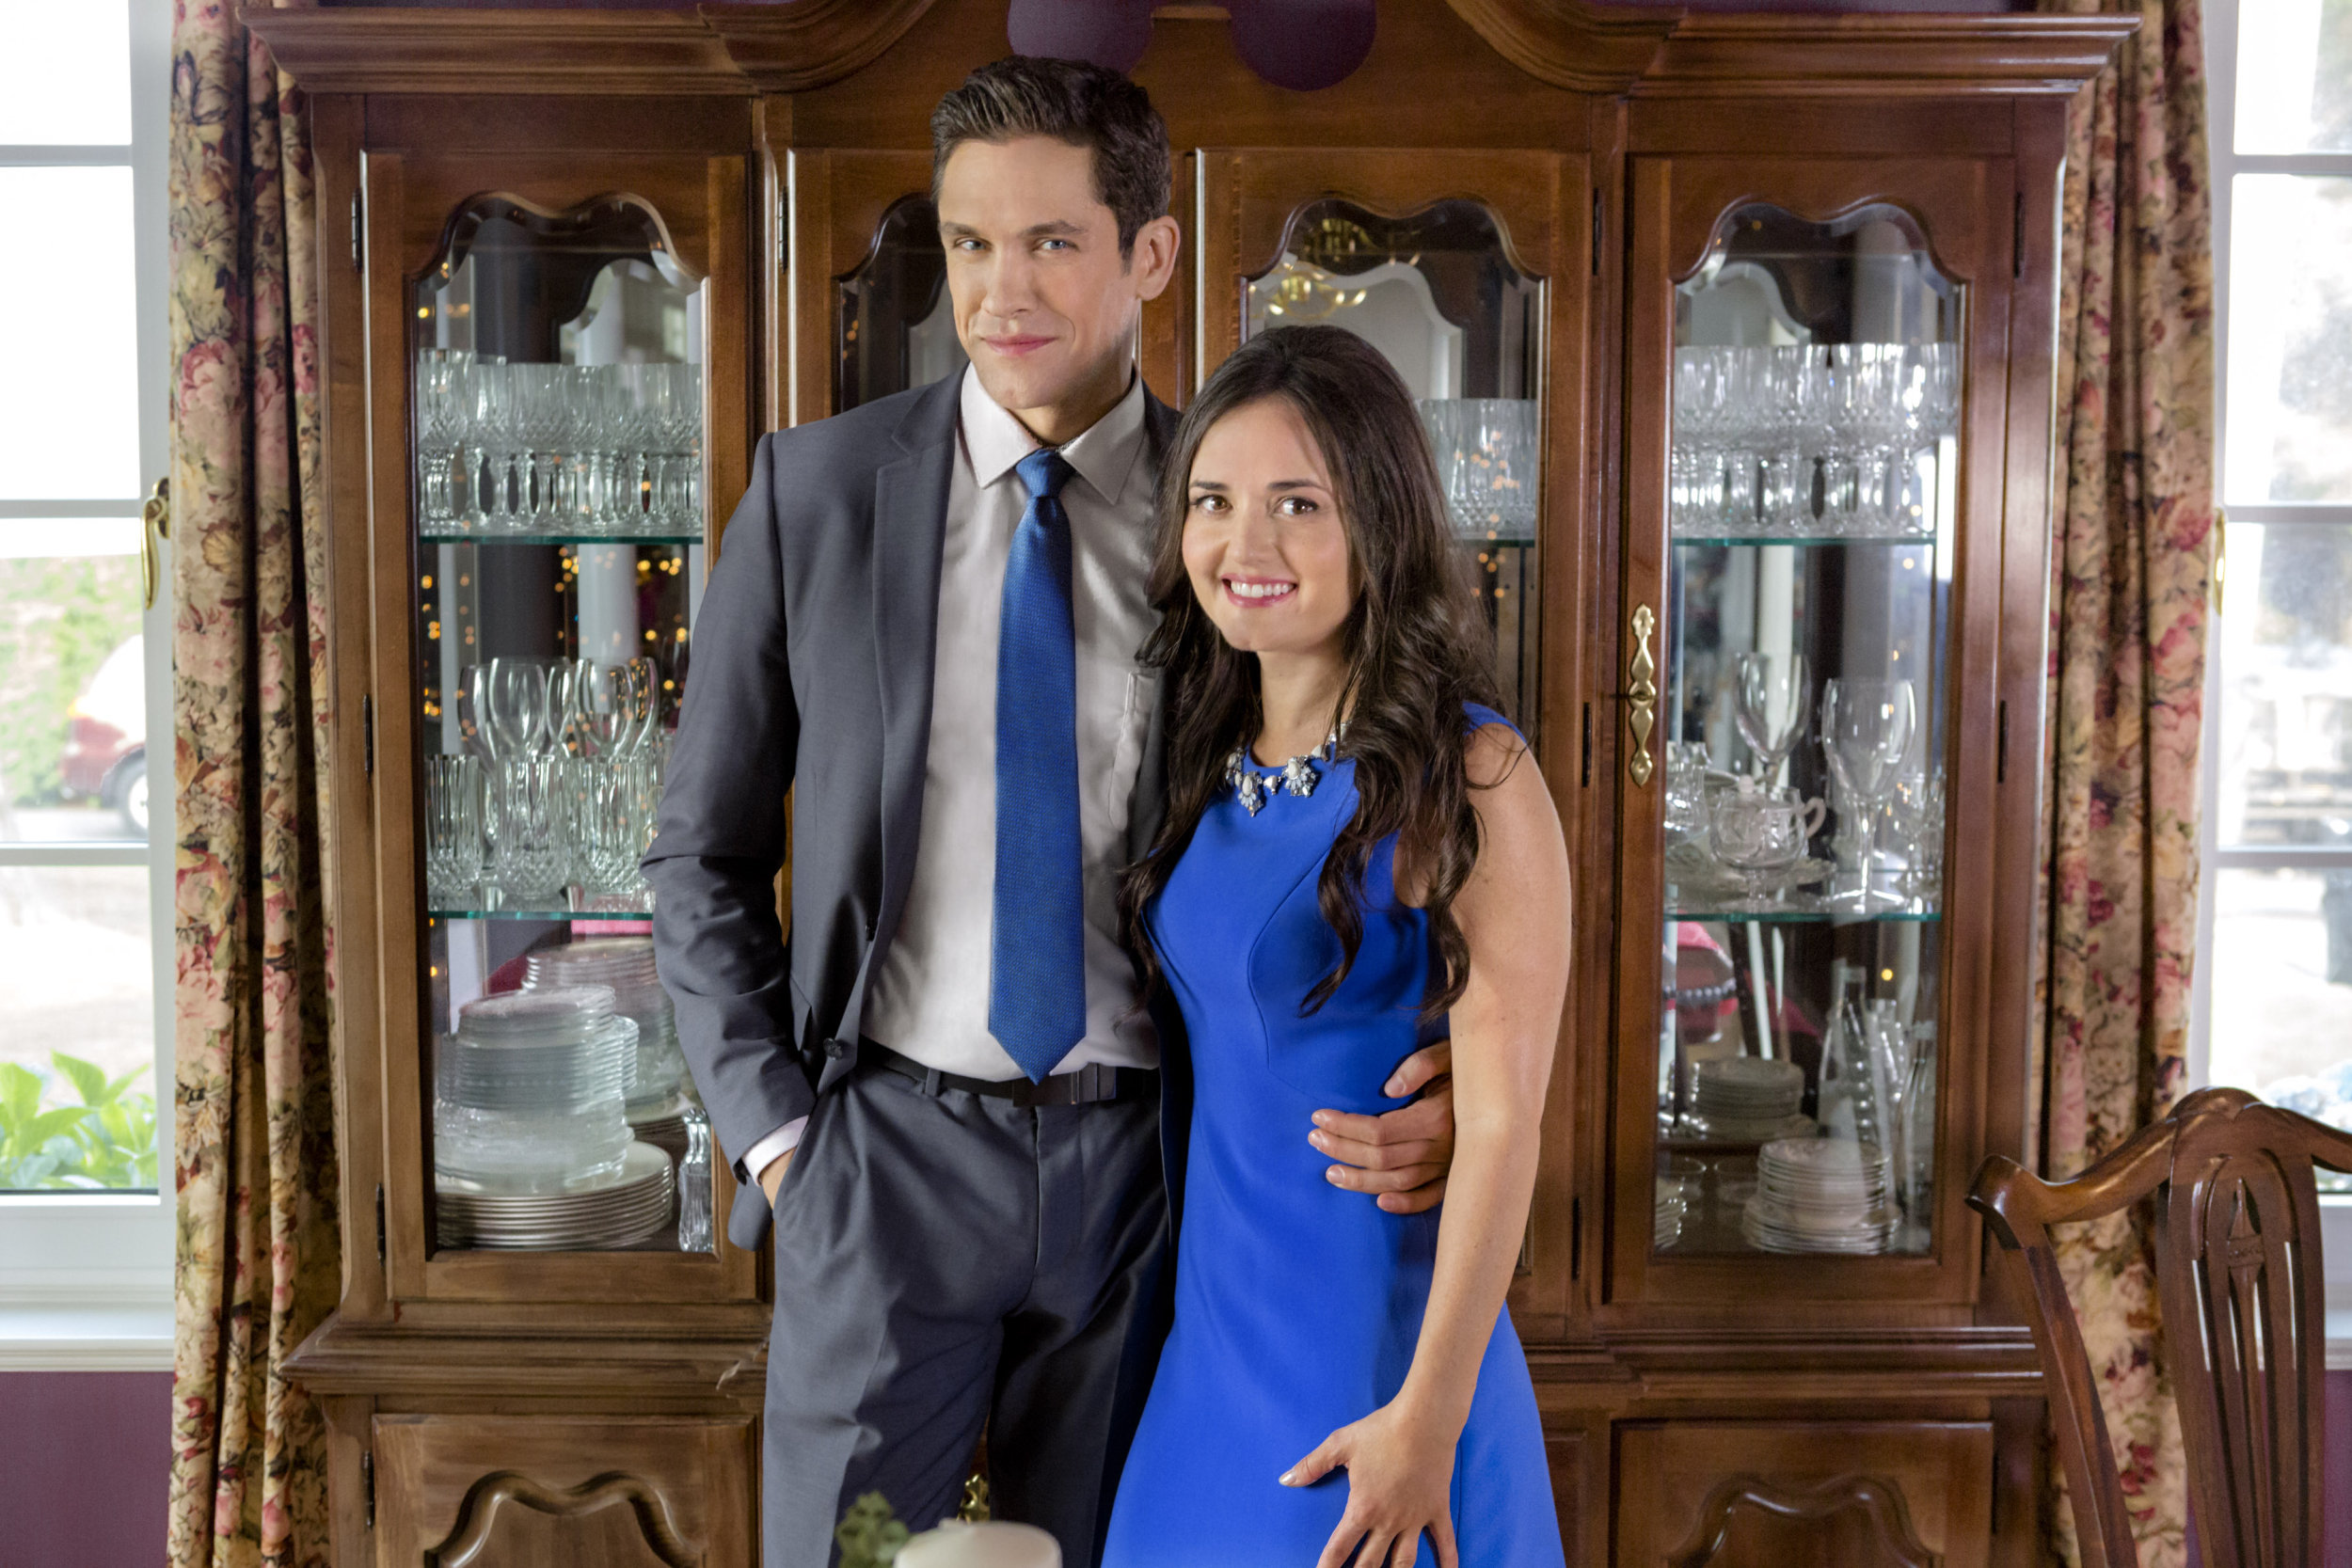 Preview + Sneak Peek - Coming Home for Christmas   Hallmark Channel